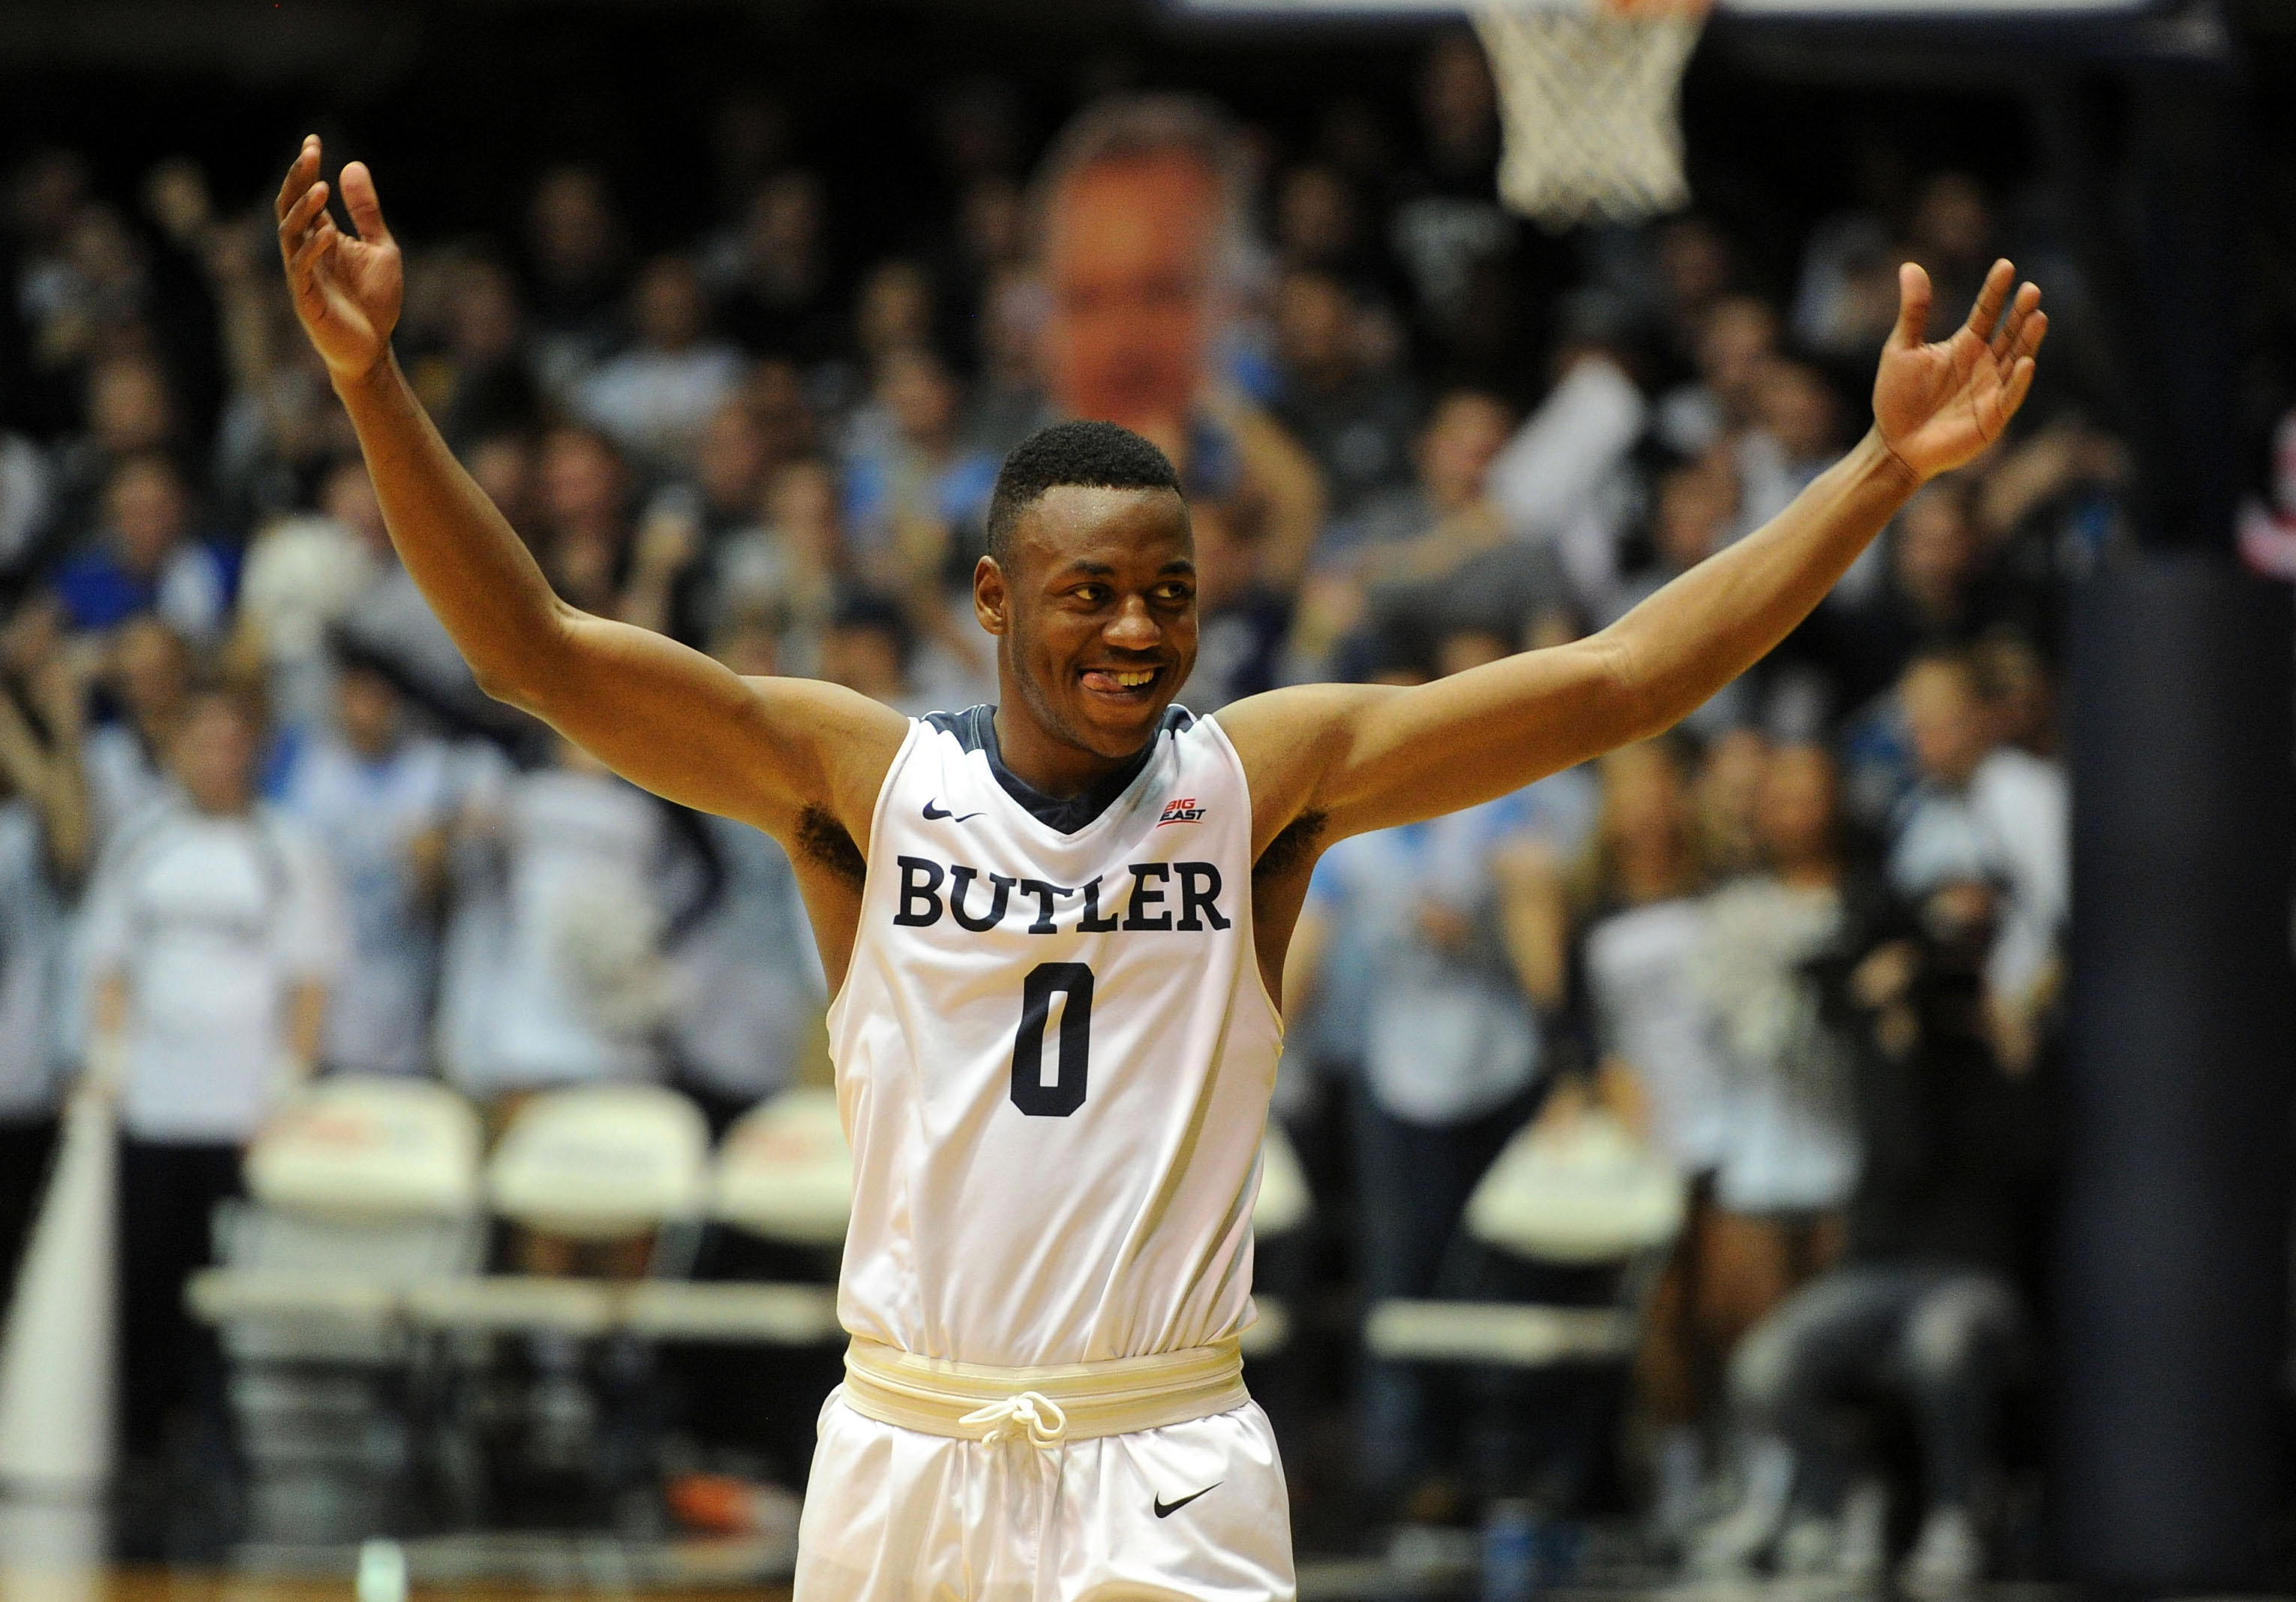 2017 March Madness Butler Vs Middle Tennessee State